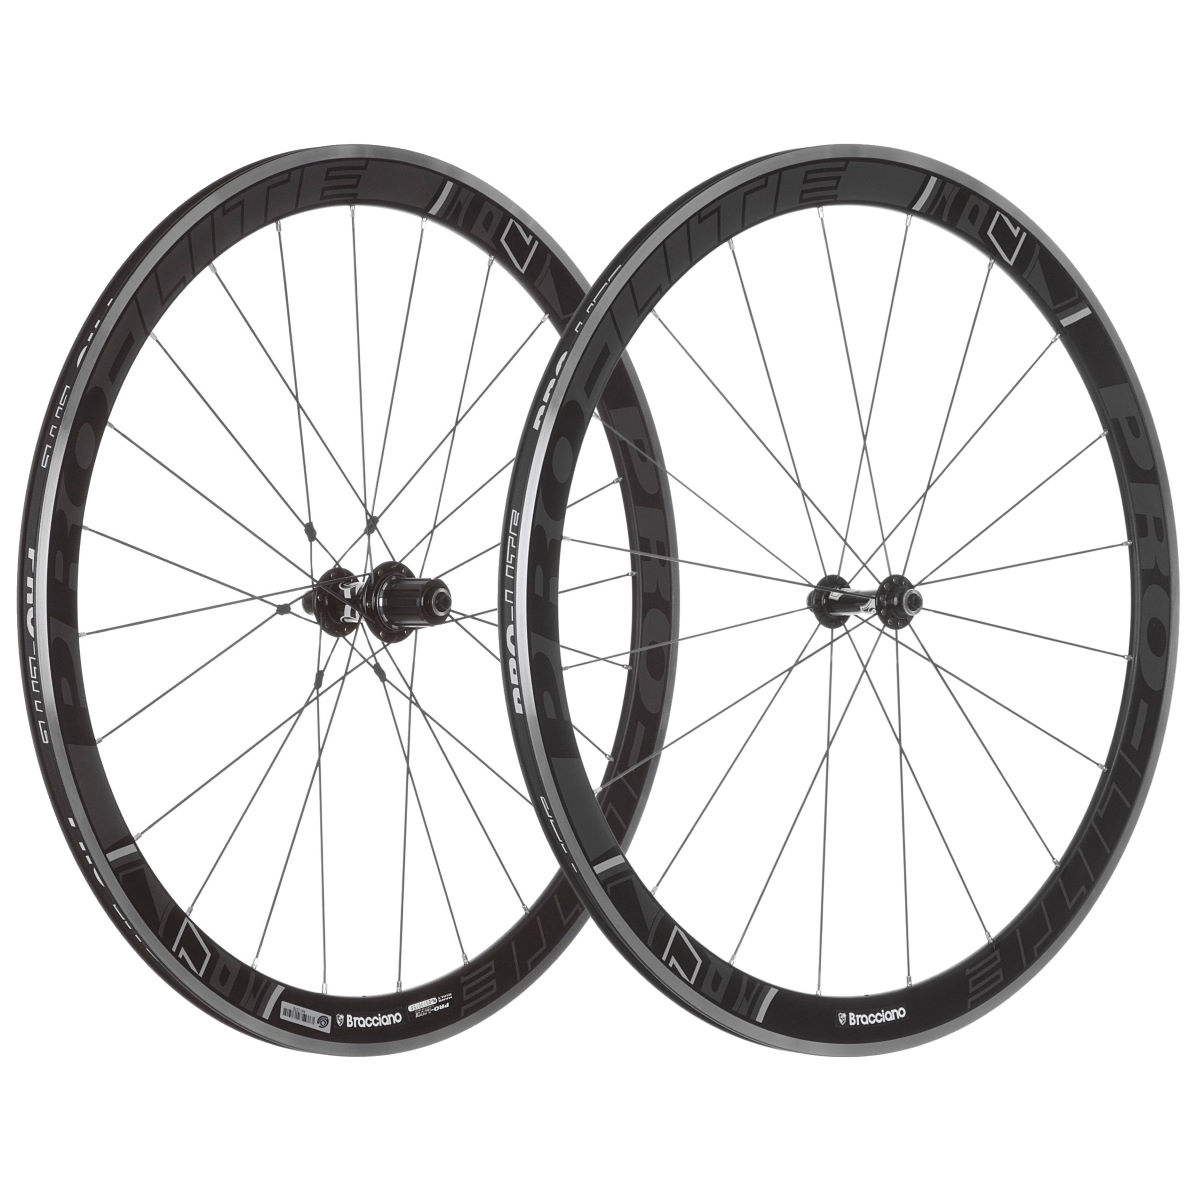 Pro Lite Bracciano A42 SE Alloy Clincher Wheelset   Performance Wheels